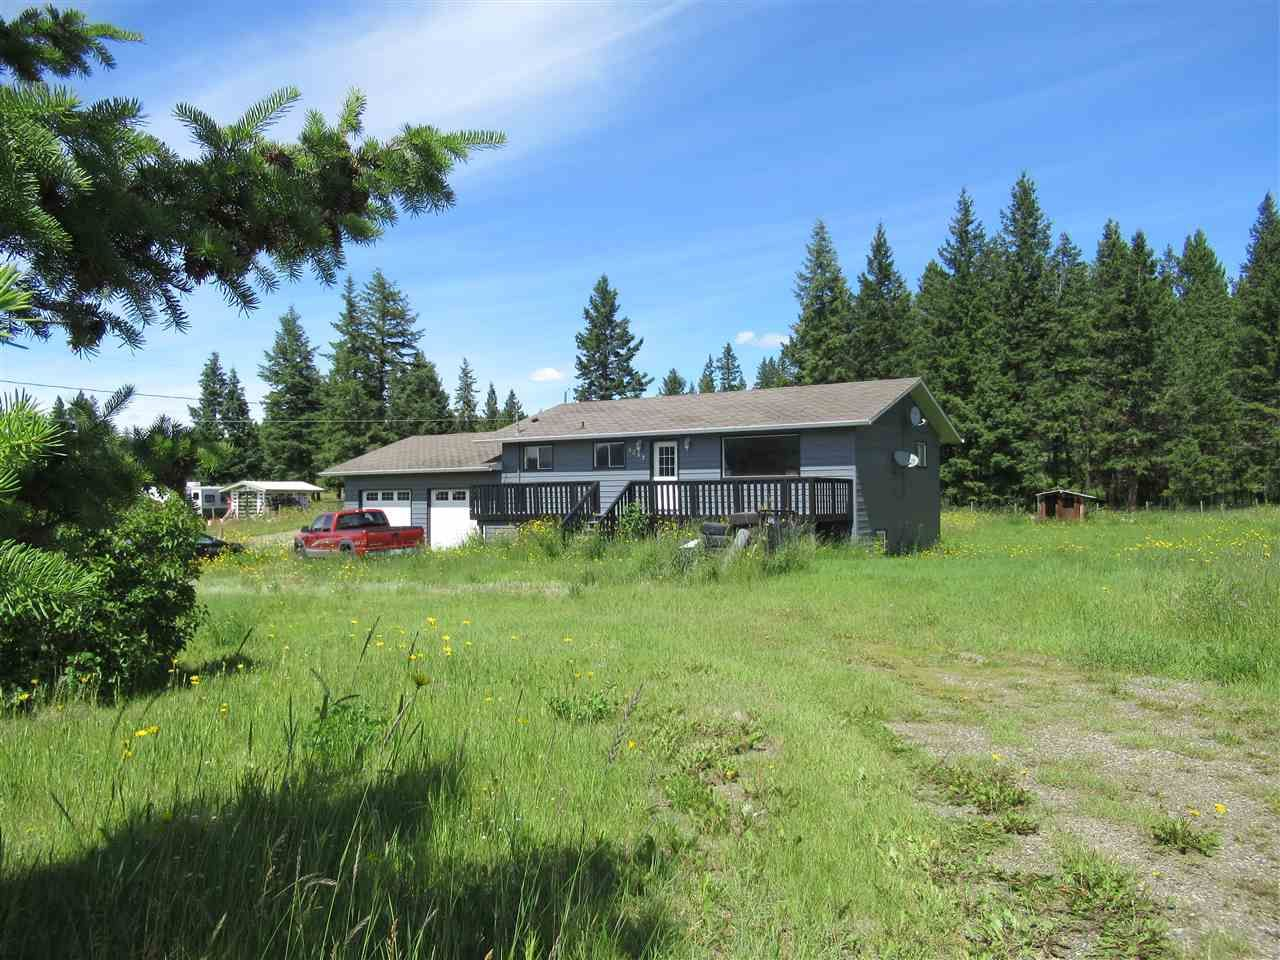 Photo 20: Photos: 3257 HINSCHE Road in Williams Lake: Williams Lake - Rural East House for sale (Williams Lake (Zone 27))  : MLS®# R2477340